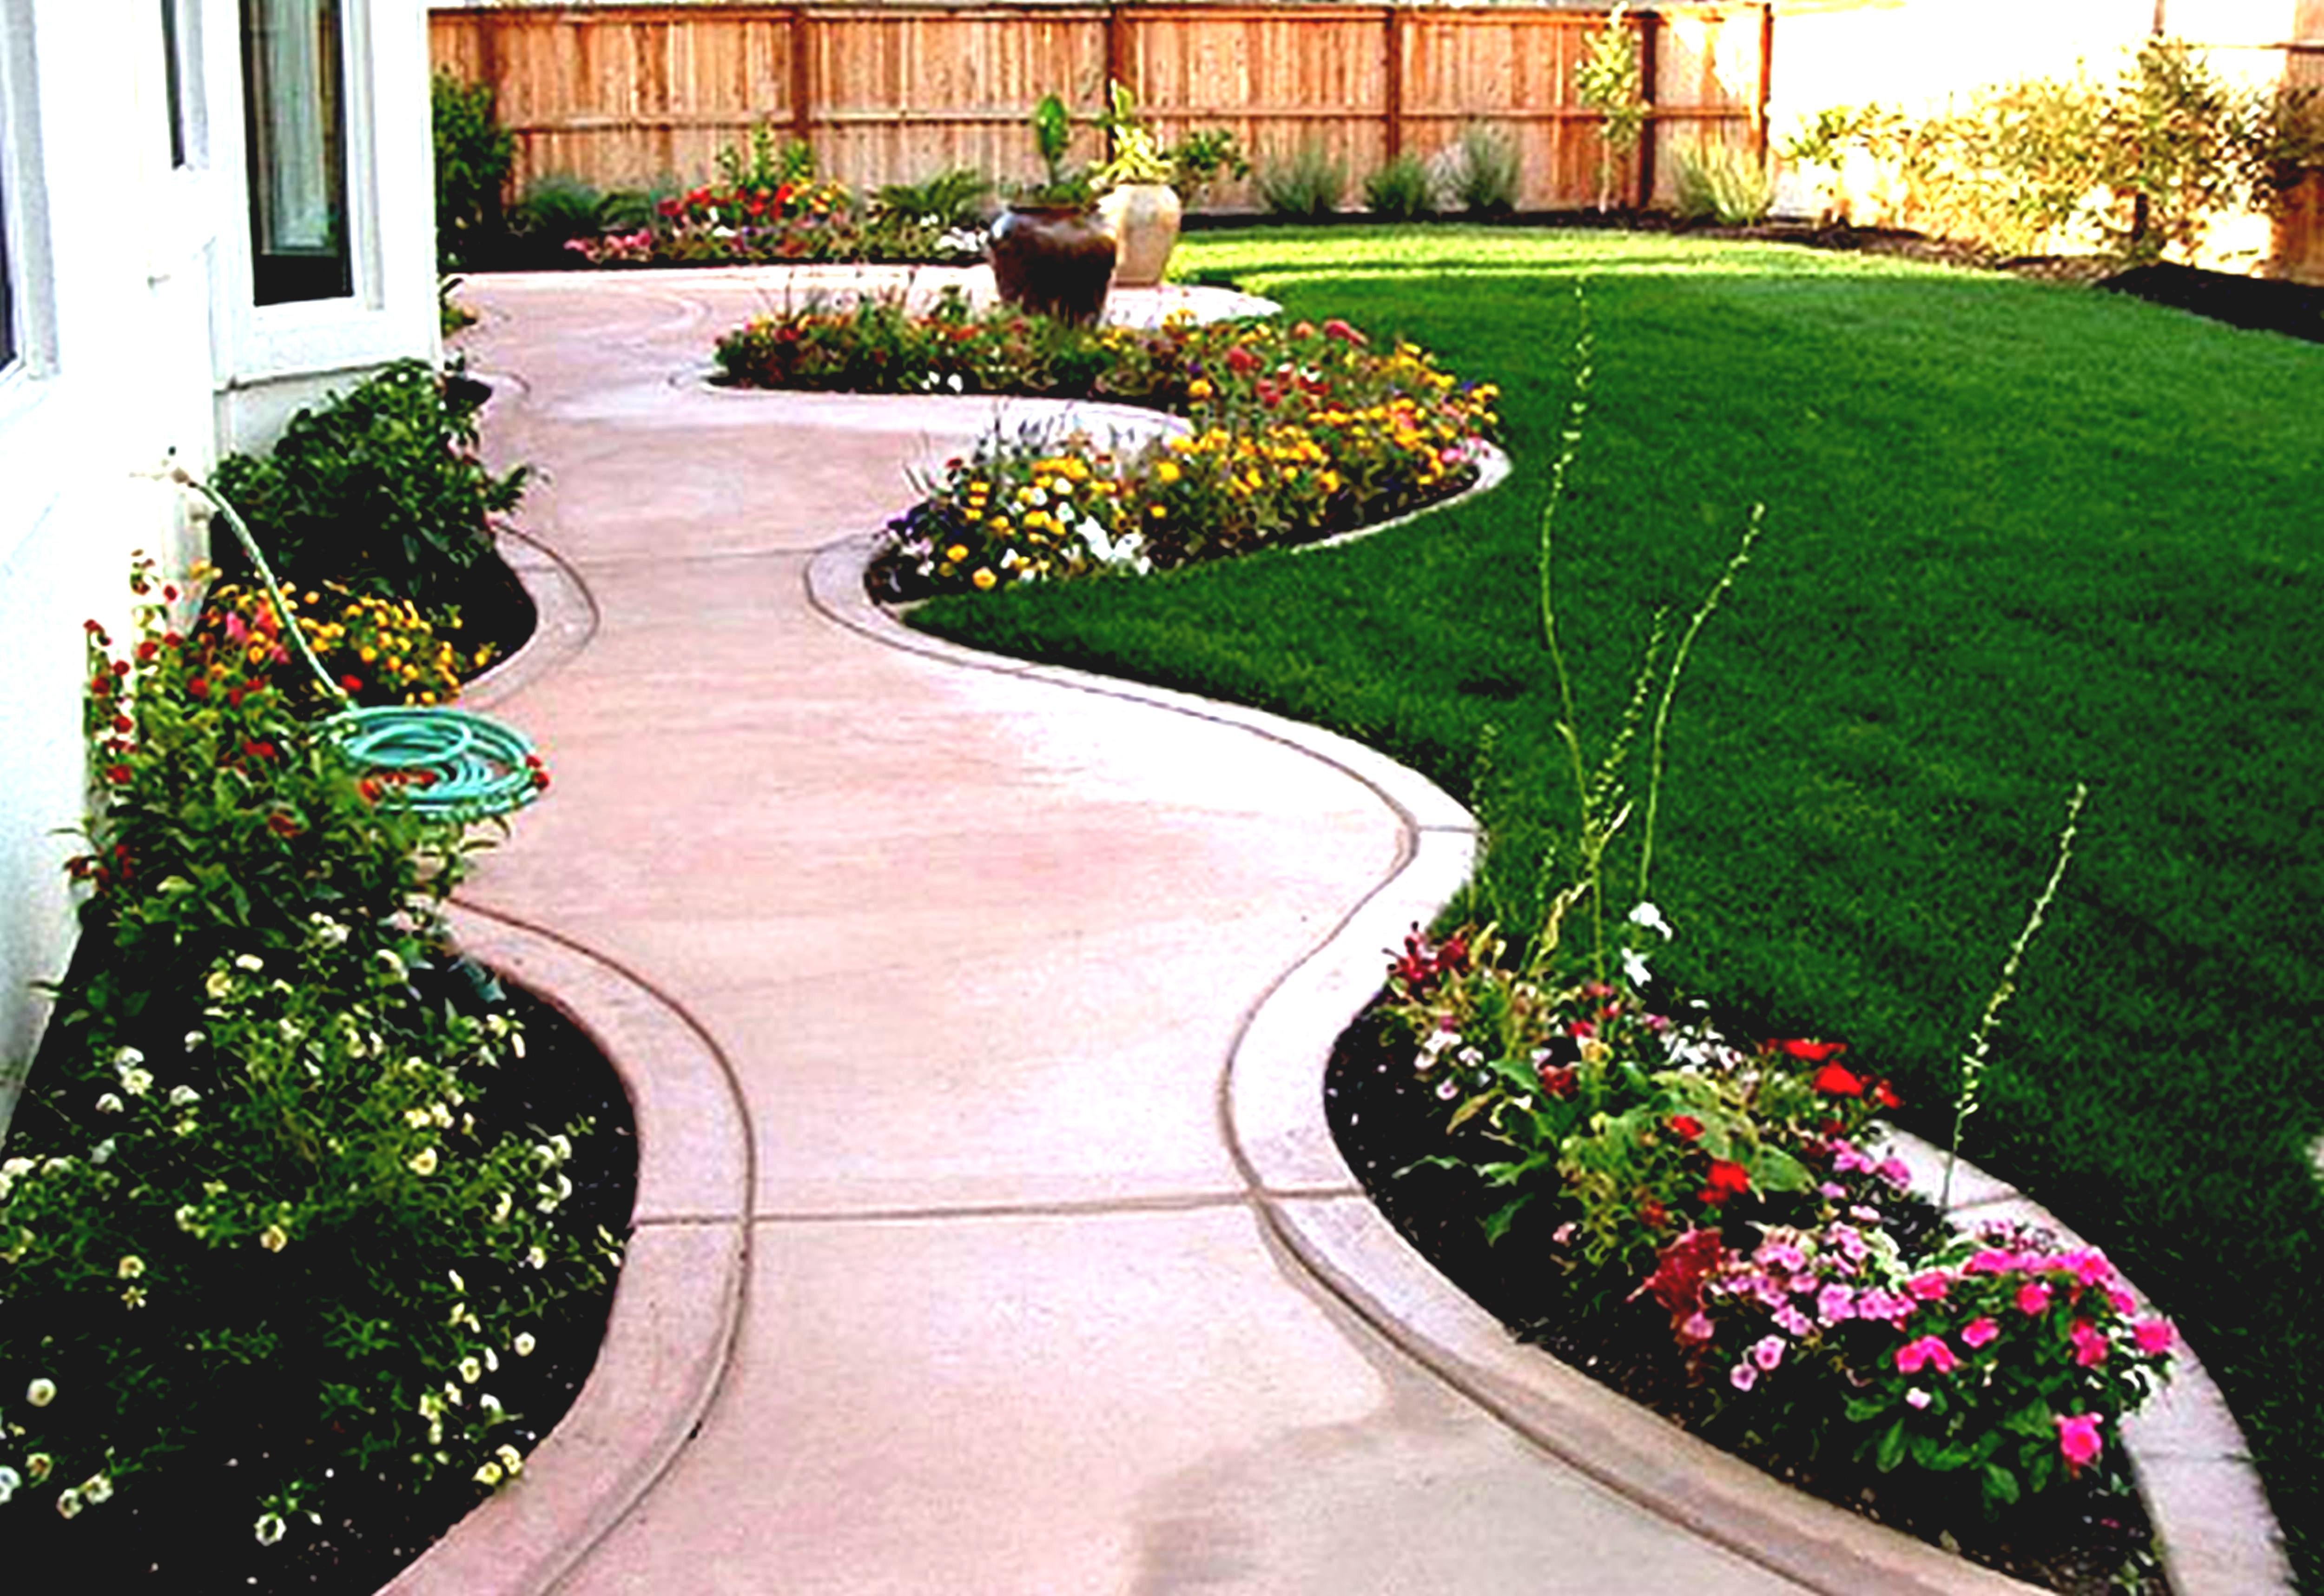 Full-size garden design ideas Garden ideas: Get noble over also landscaping is ideas and HCQPCSP